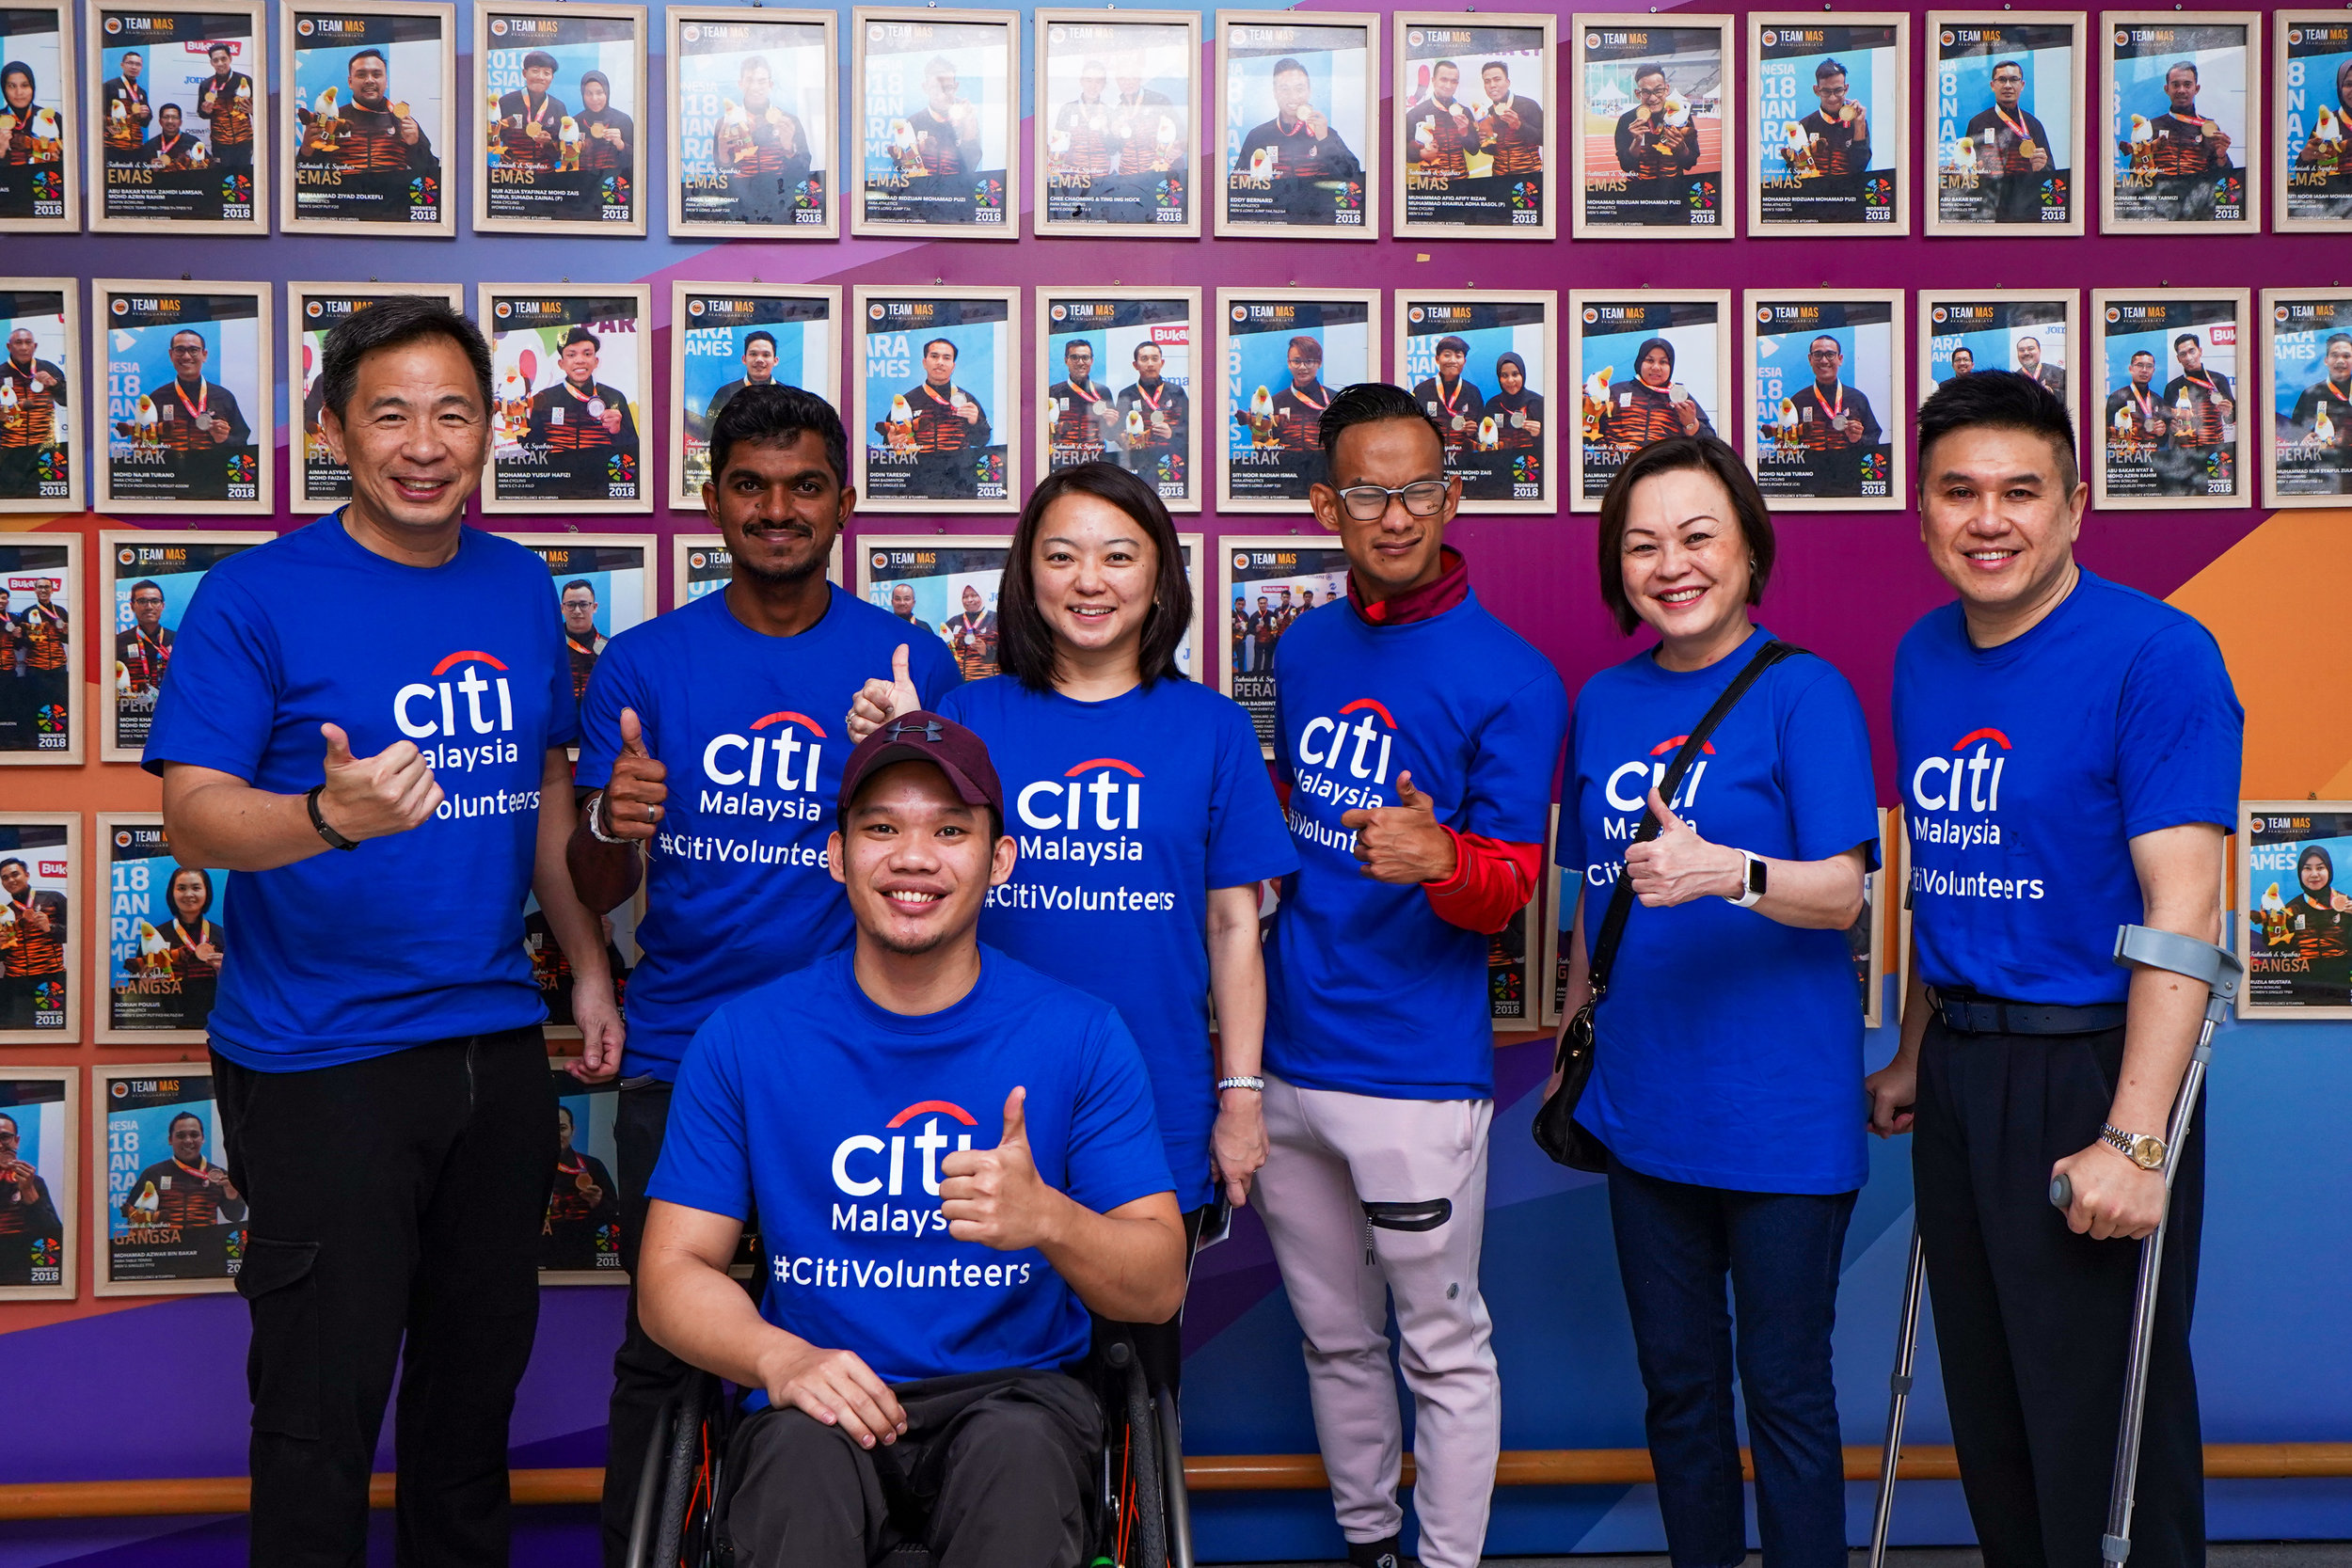 Citi partners the Paralympic Council for Global Community Day.   From left to right – Lee Lung Nien, CEO Citi Malaysia, World Para Archer Champion S.Suresh, Deputy Minister of Women, Family & Community Development YB Hannah Yeoh, Para Games Sprint Champion Mohamad Ridzuan Mohamad Puzi, Citi Country Business Manager Elaine Fan and Deputy President, Paralympic Council of Malaysia John Ng. Front row: Asian Para Games champion swimmer Muhammad Nur Syaiful Zulkifli.